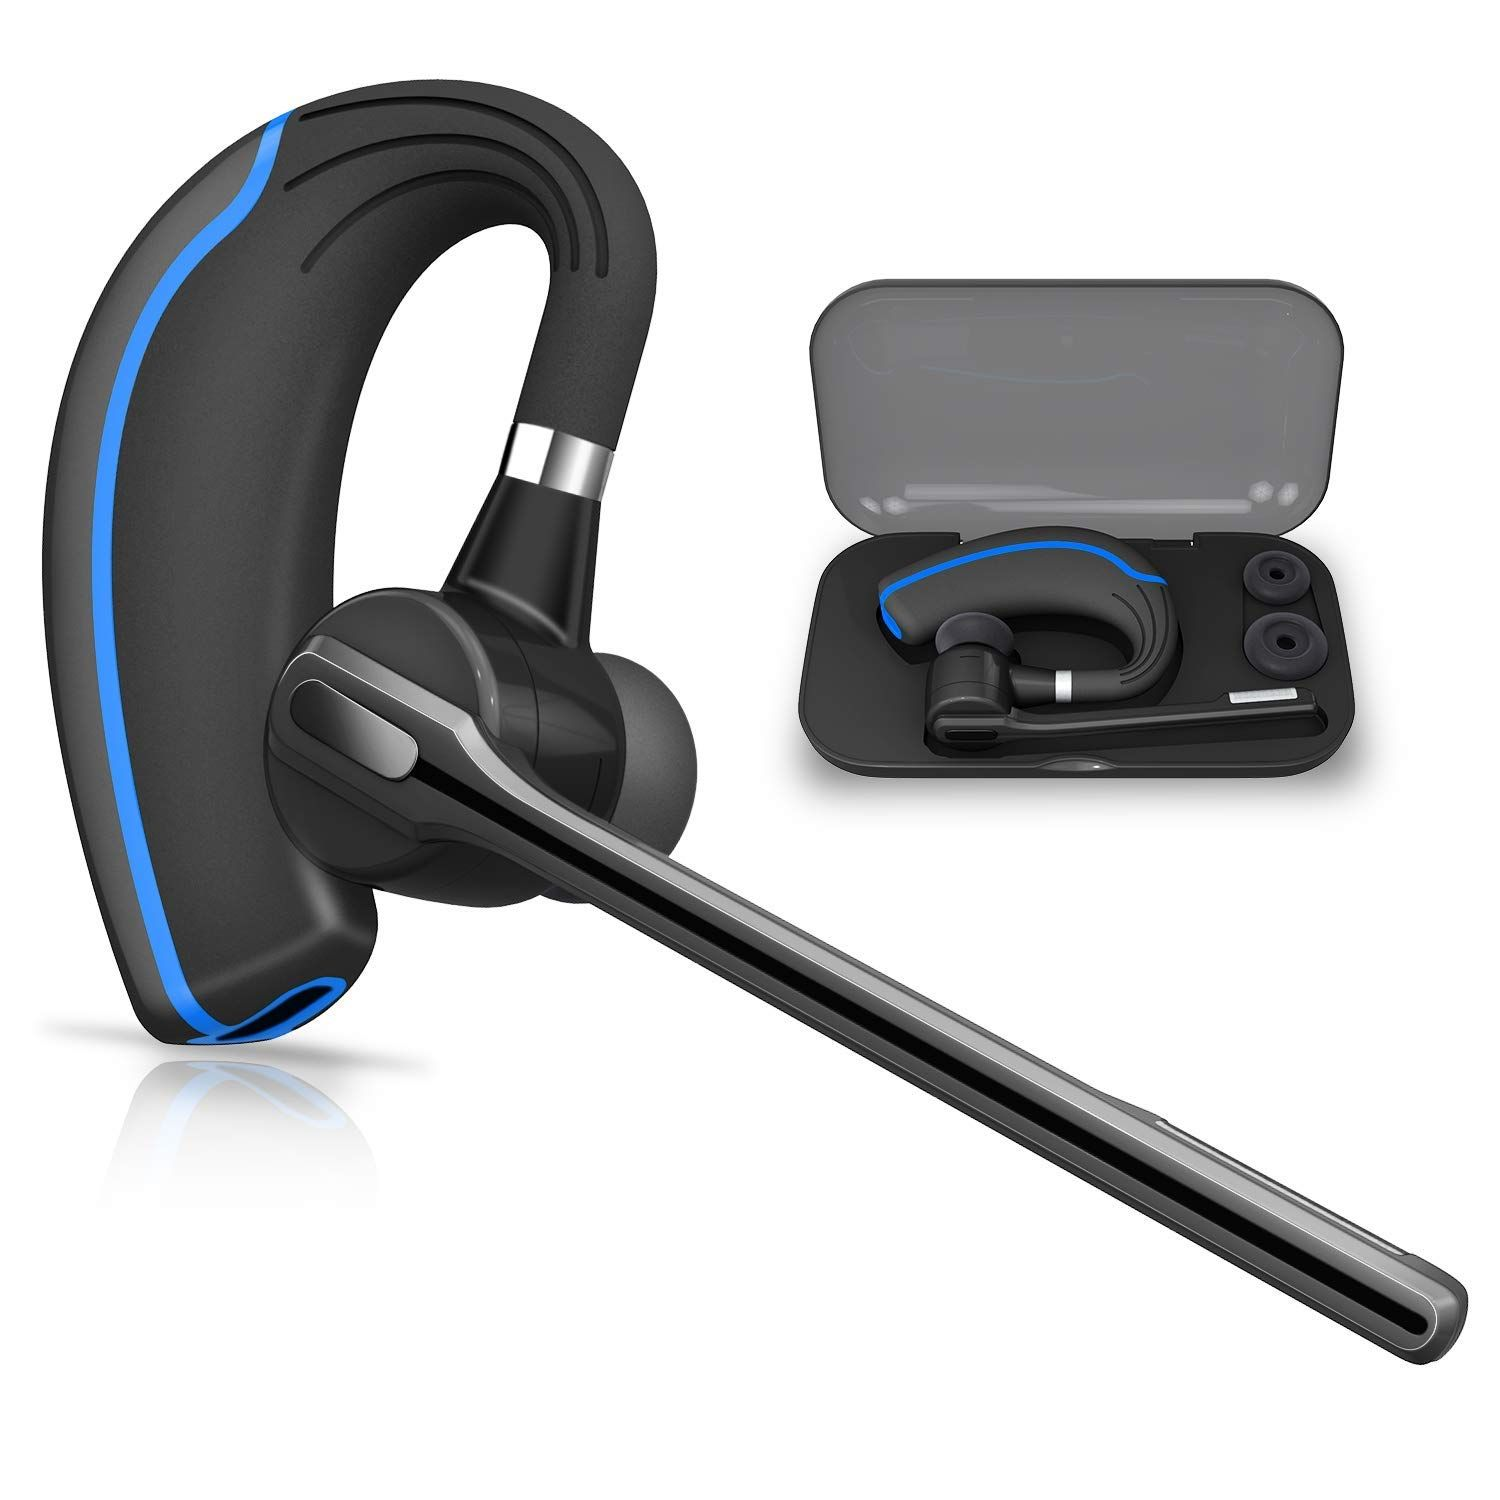 Bluetooth Headset Honshoop Bluetooth 5 0 In Ear Bluetooth Earpiece Wireless Headphones Noise Reduction Earphones W Bluetooth Headset Bluetooth Earpiece Headset